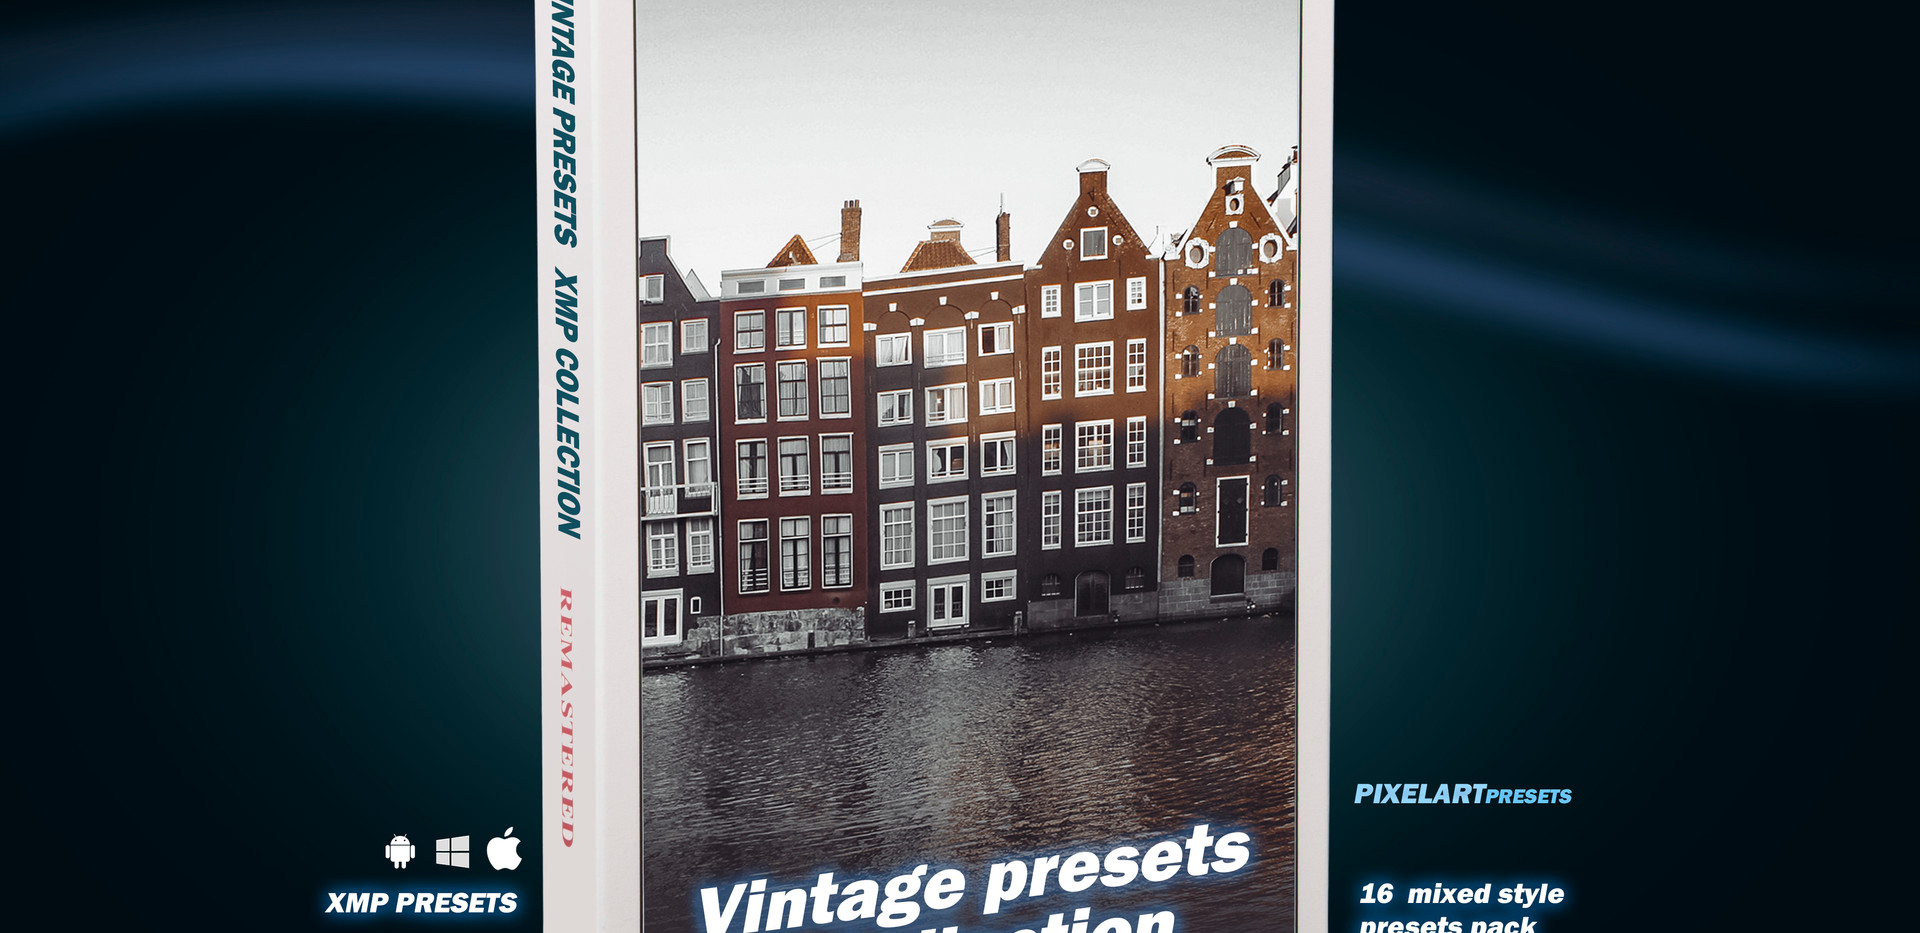 XMP VINTAGE PRESET COLLECTIONjpg